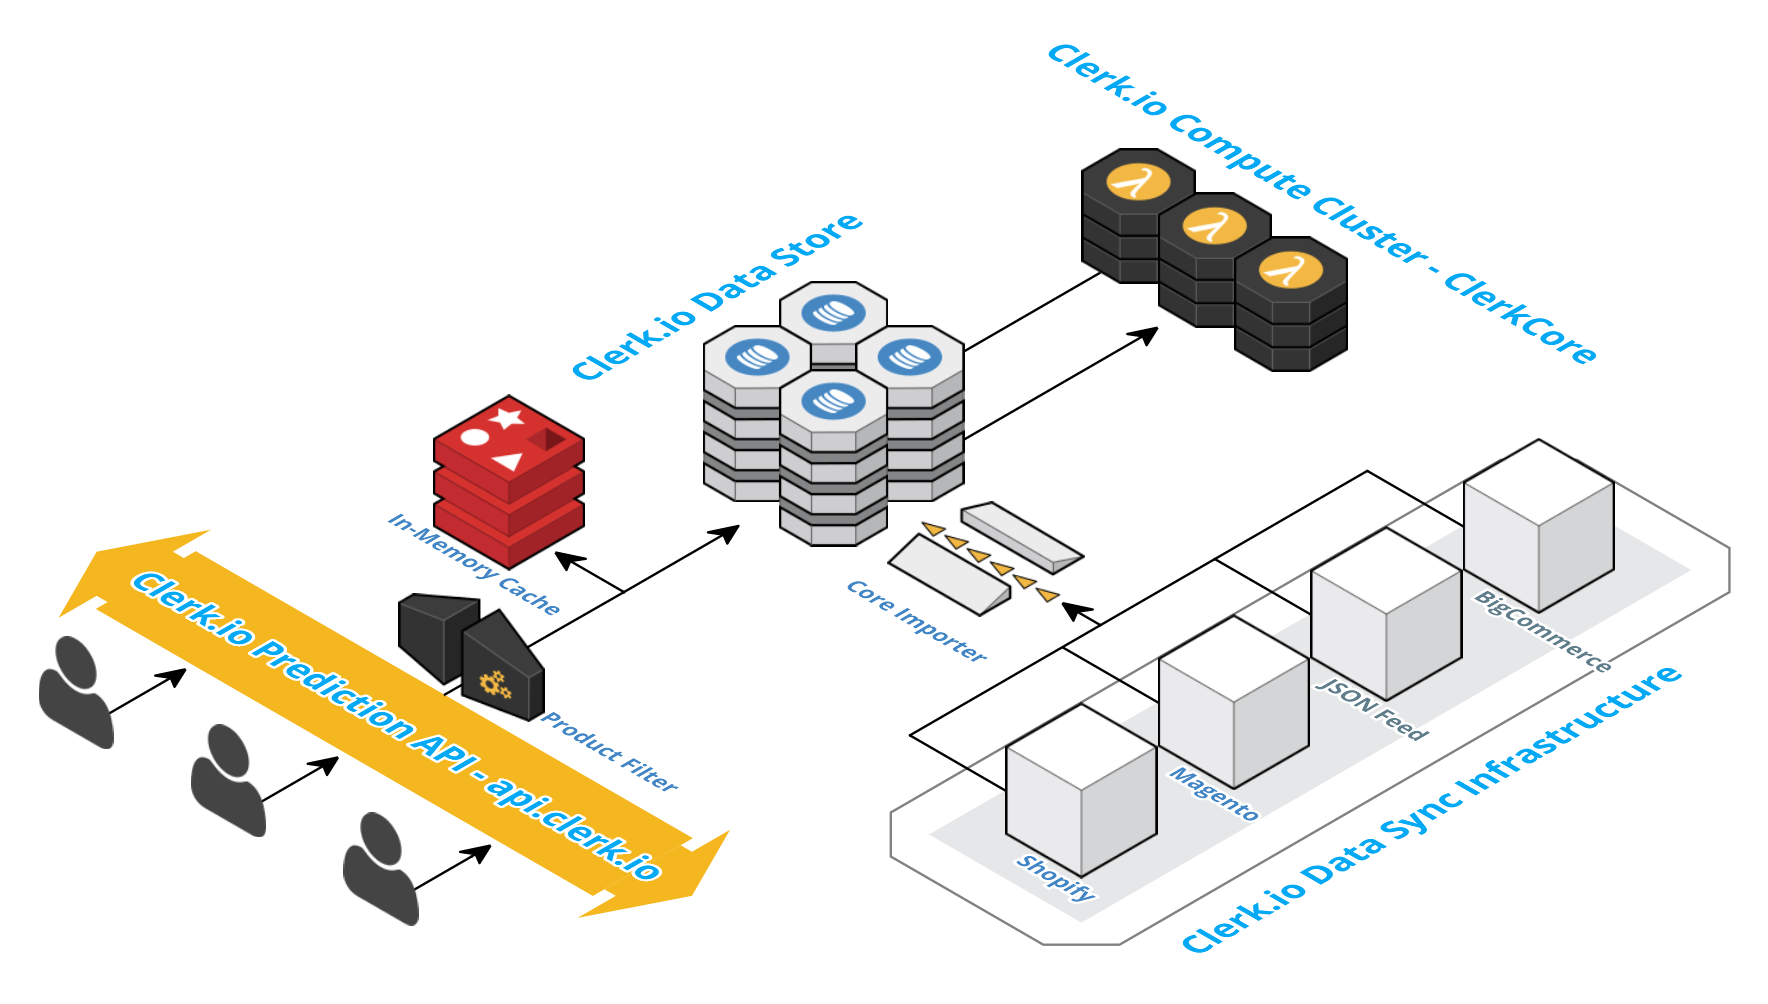 A simple diagram overview of the Clerk.io platform and the 3 sub-systems.